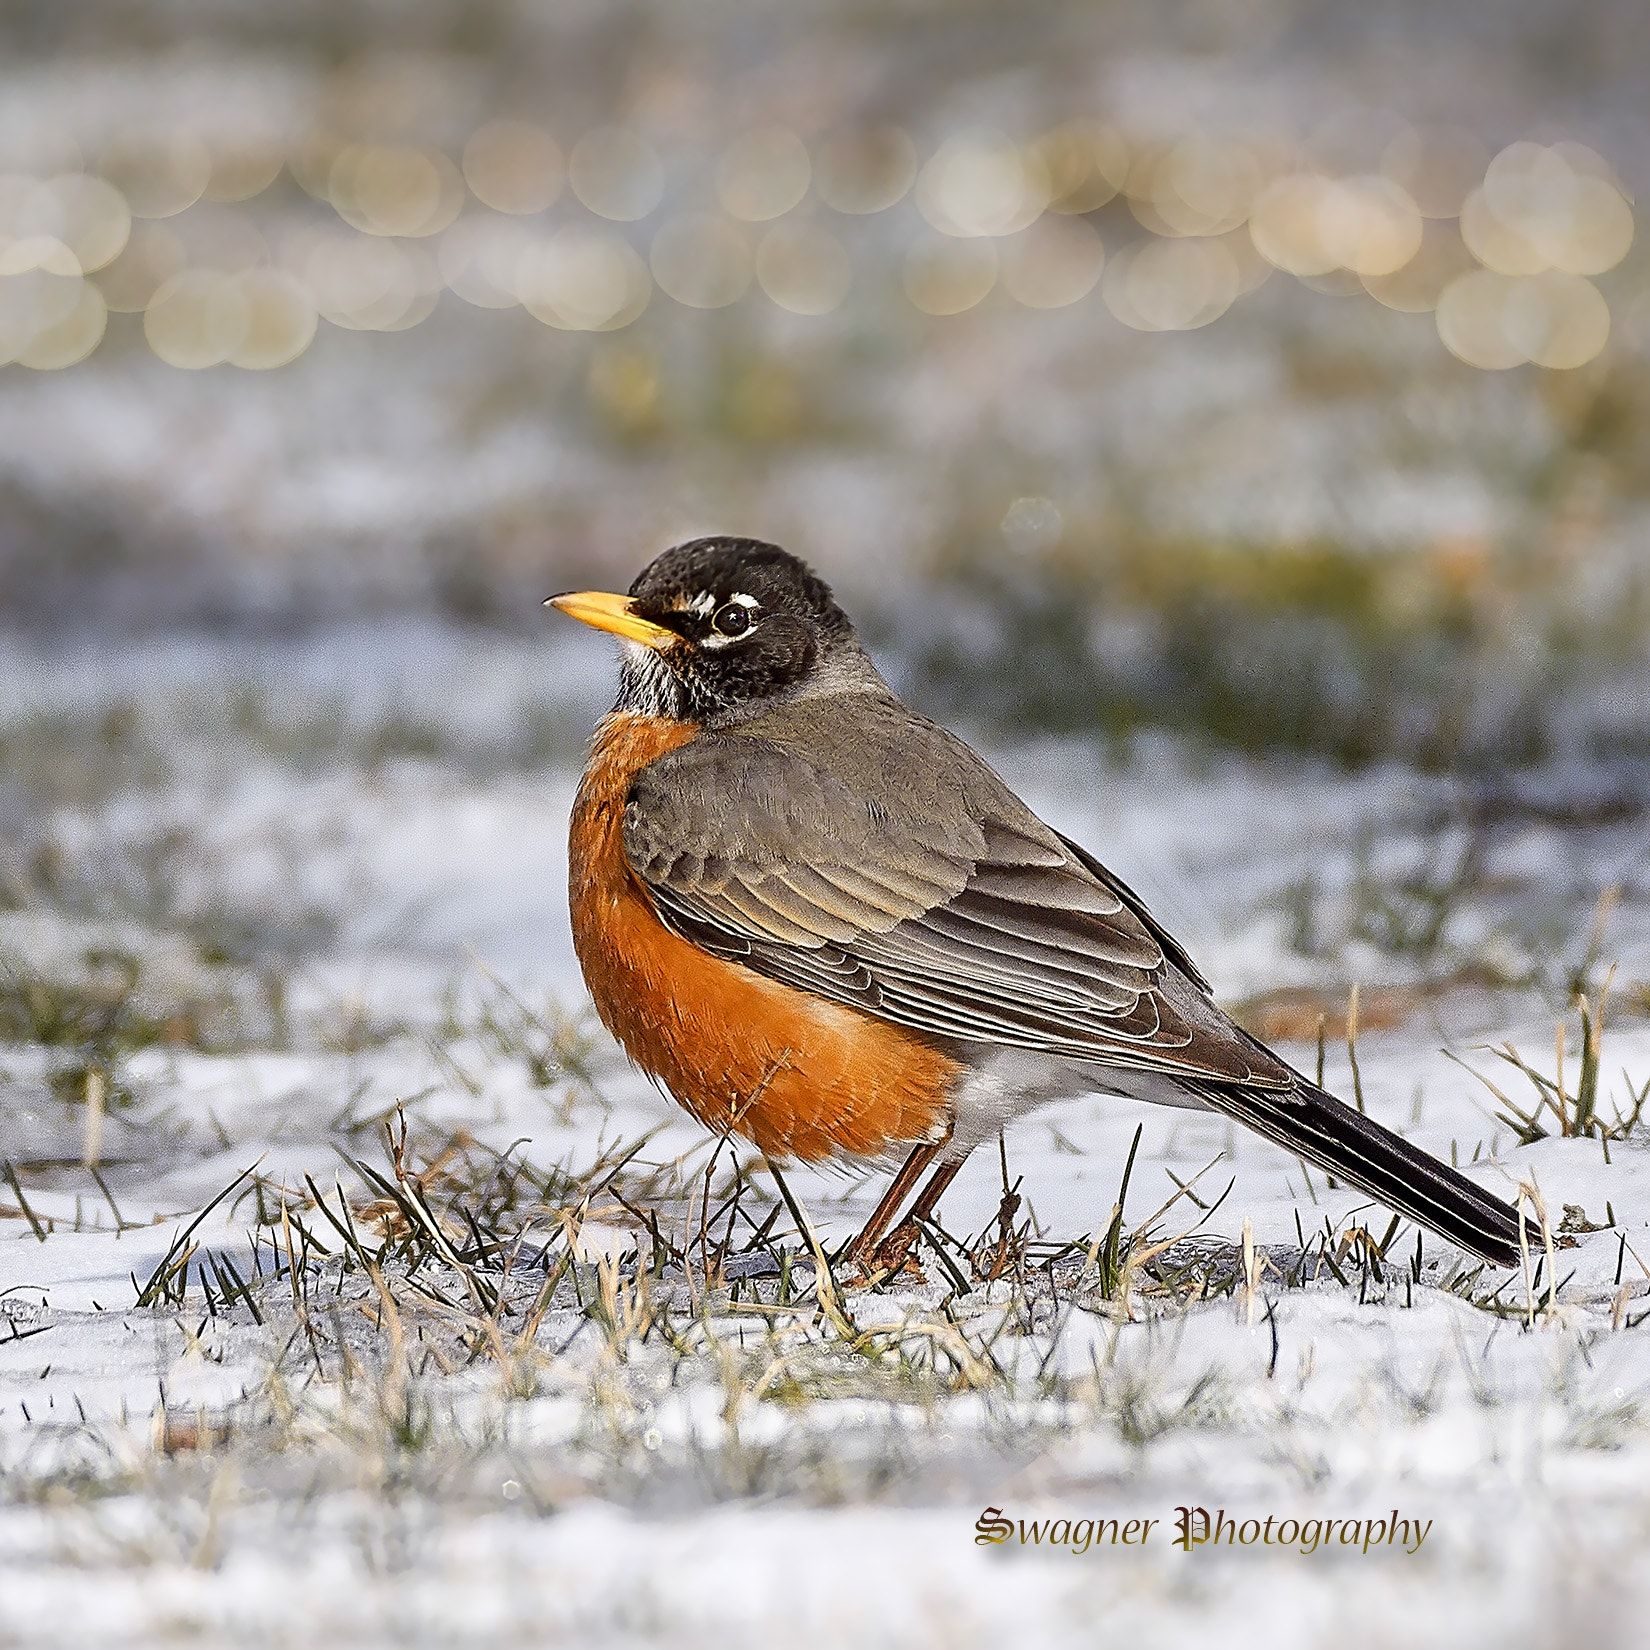 Winter Robin Robin Standing On The Snow Covered Ground Patiently